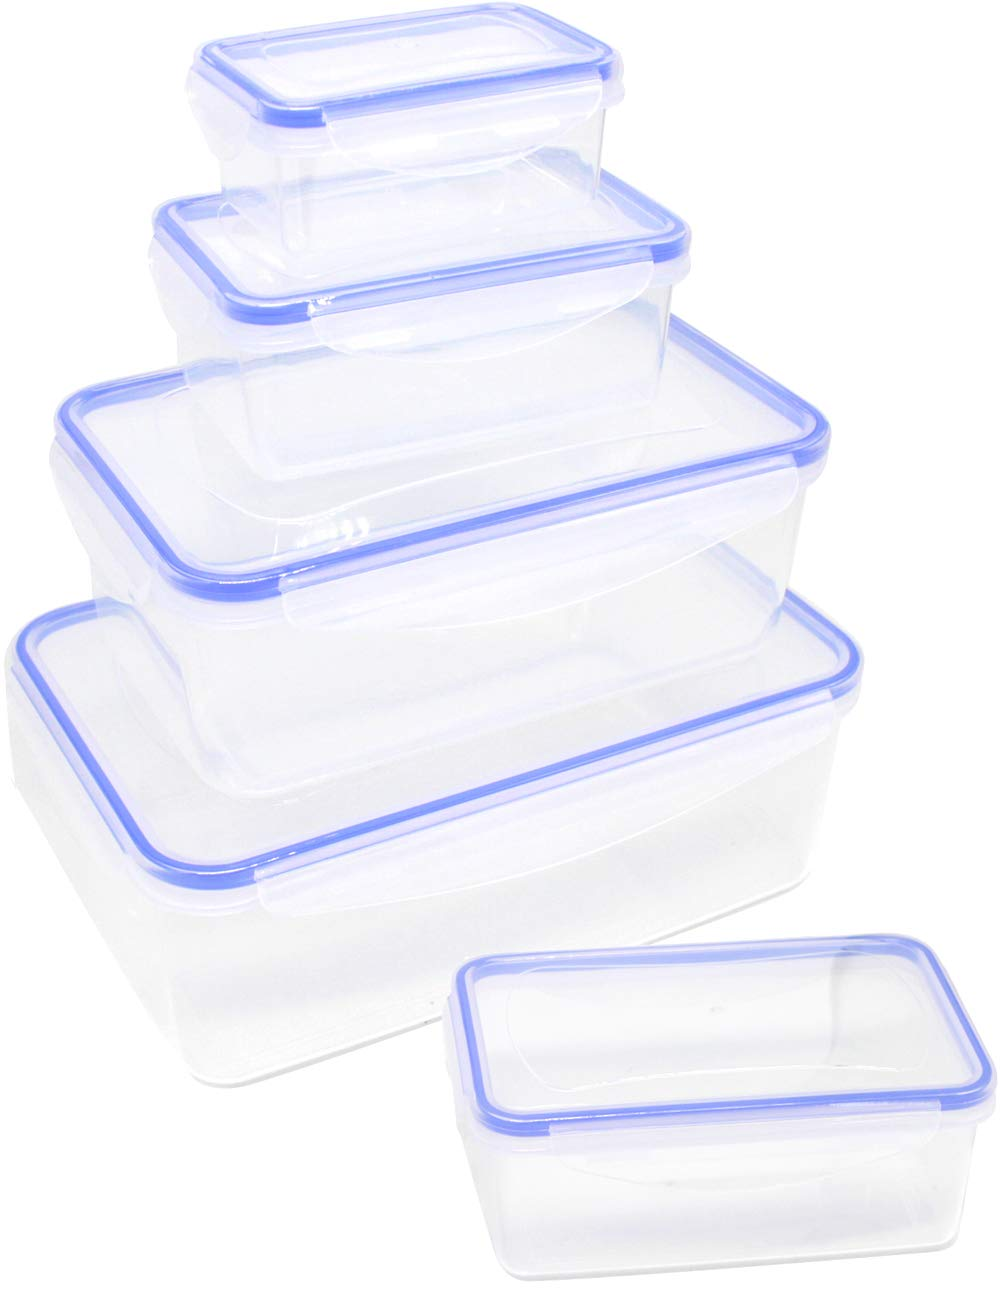 10 Pieces Rectangular Plastic Meal Food Prep Containers with Lids Food Storage Containers Airtight Lunch Containers Portion Control Storage Organizer- BPA Free